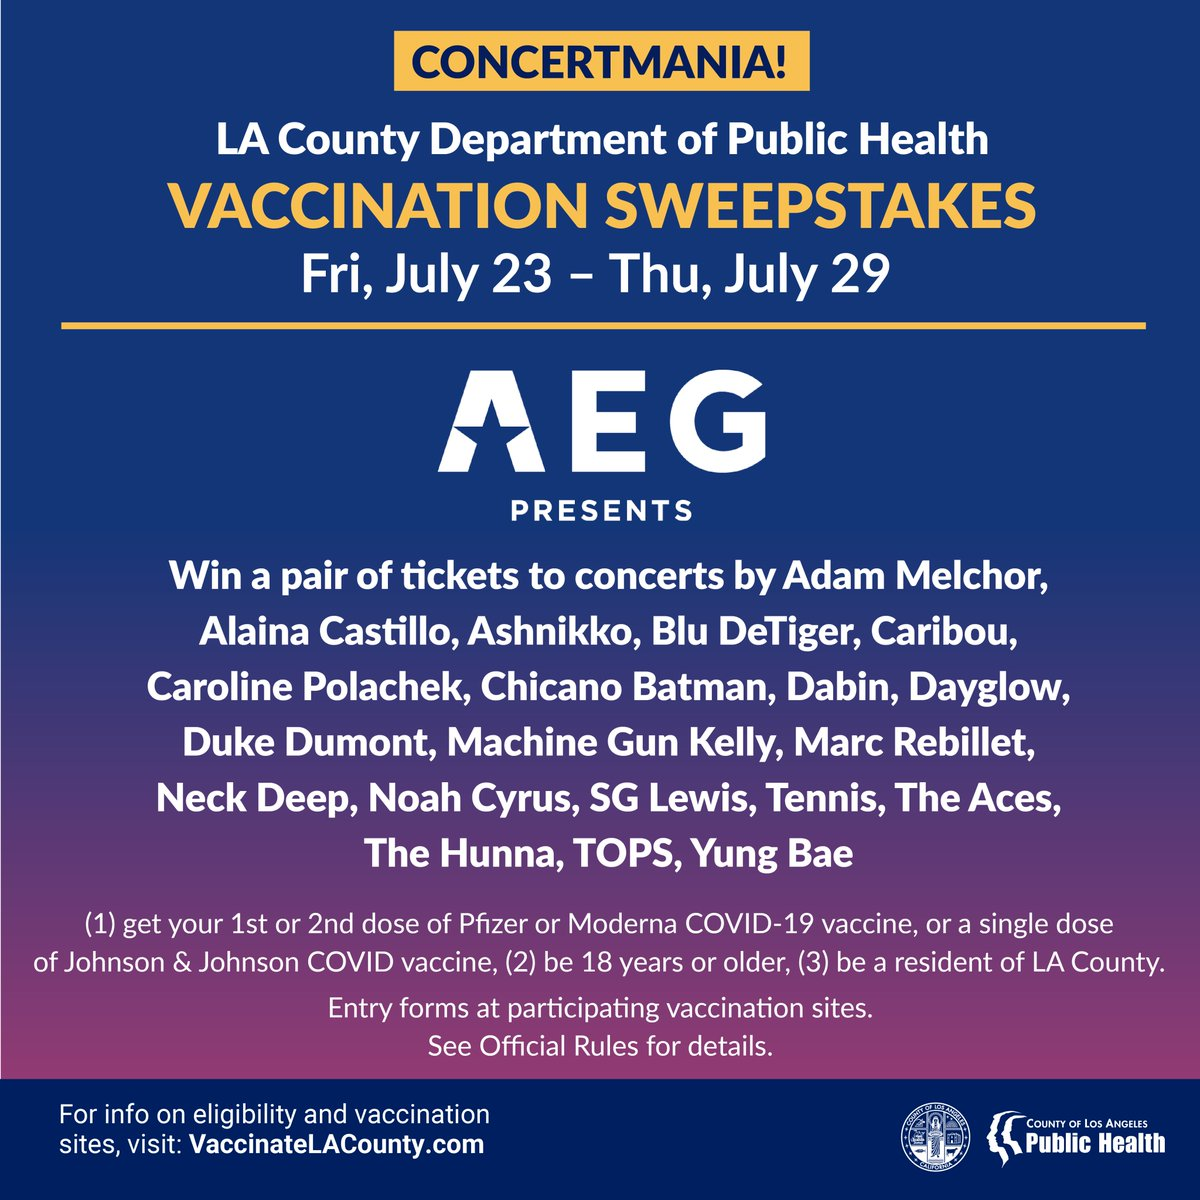 (1/2) THIS WEEK: Get vaccinated for a chance to win ticket packages from @aegpresents Concerts! Seven lucky winners will be able to attend concerts by (3) of the following: @AdamMelchor, @alainacastillo, @ashnikko, @bludetiger, @caribouband , @carolineplz, @ChicanoBatman, https://t.co/8T72tT7Qsb